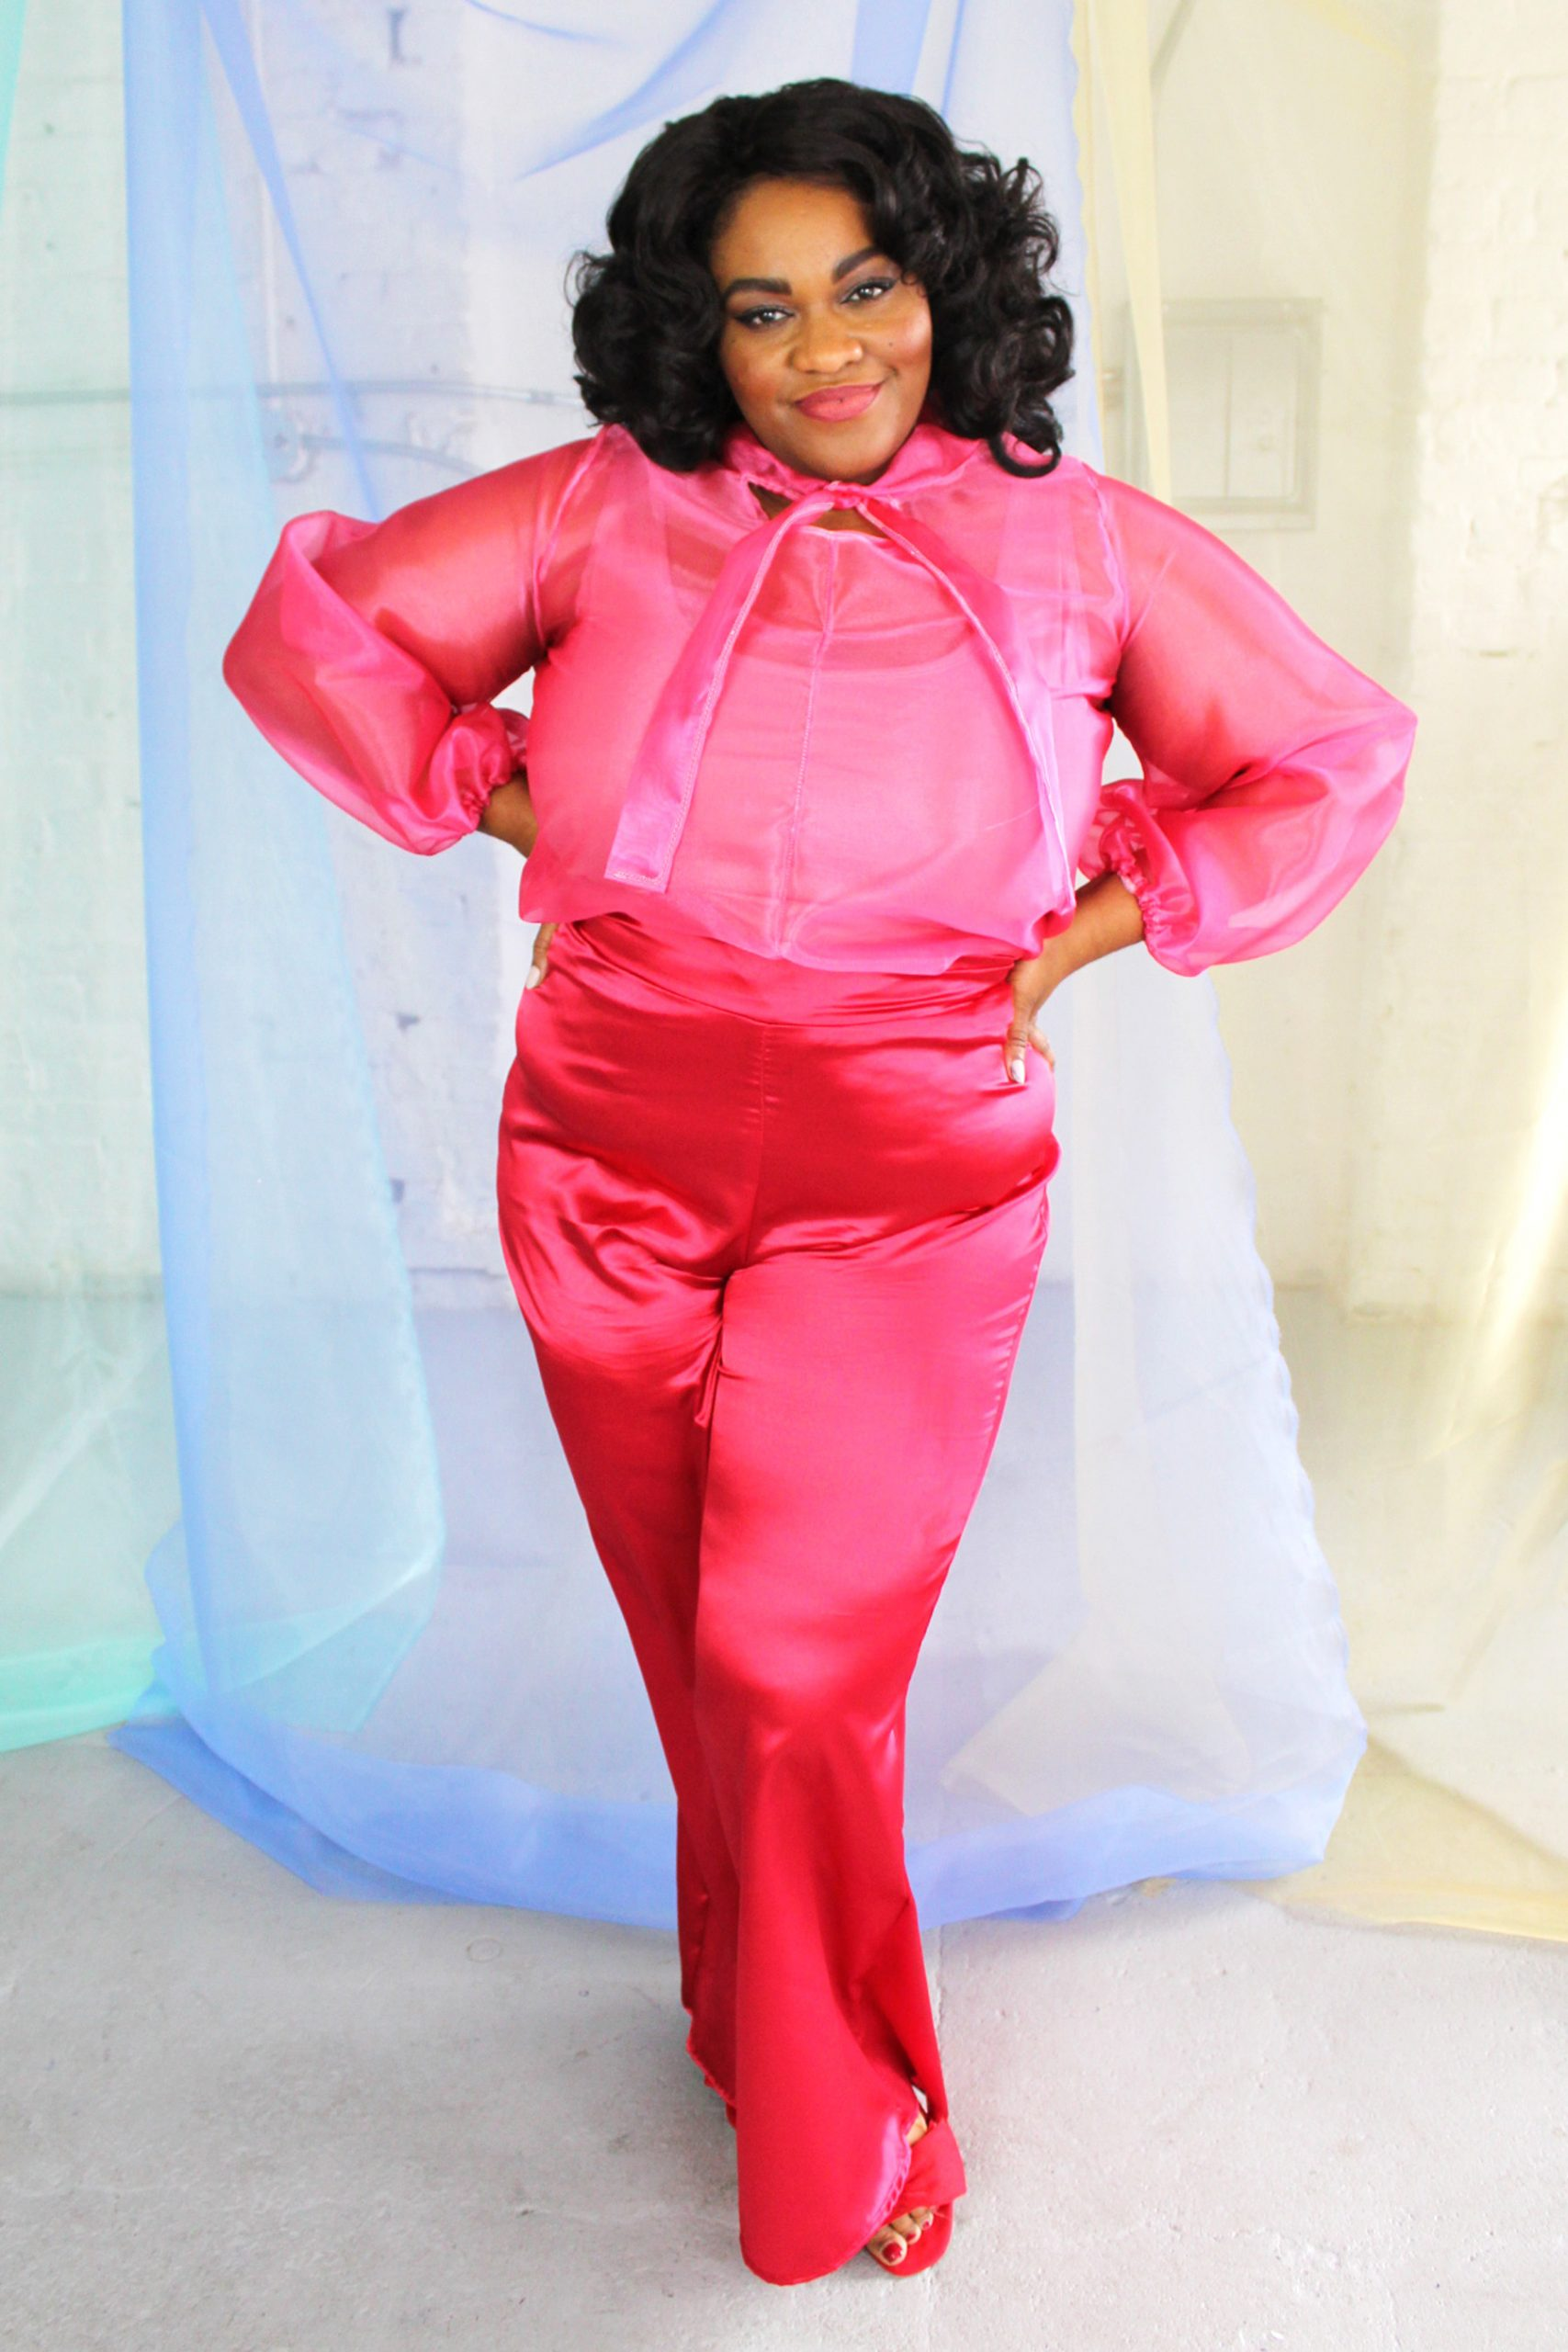 Plus size black model with curly hair wearing pink organza blouse with neck tie + bell sleeves with red satin pants handmade